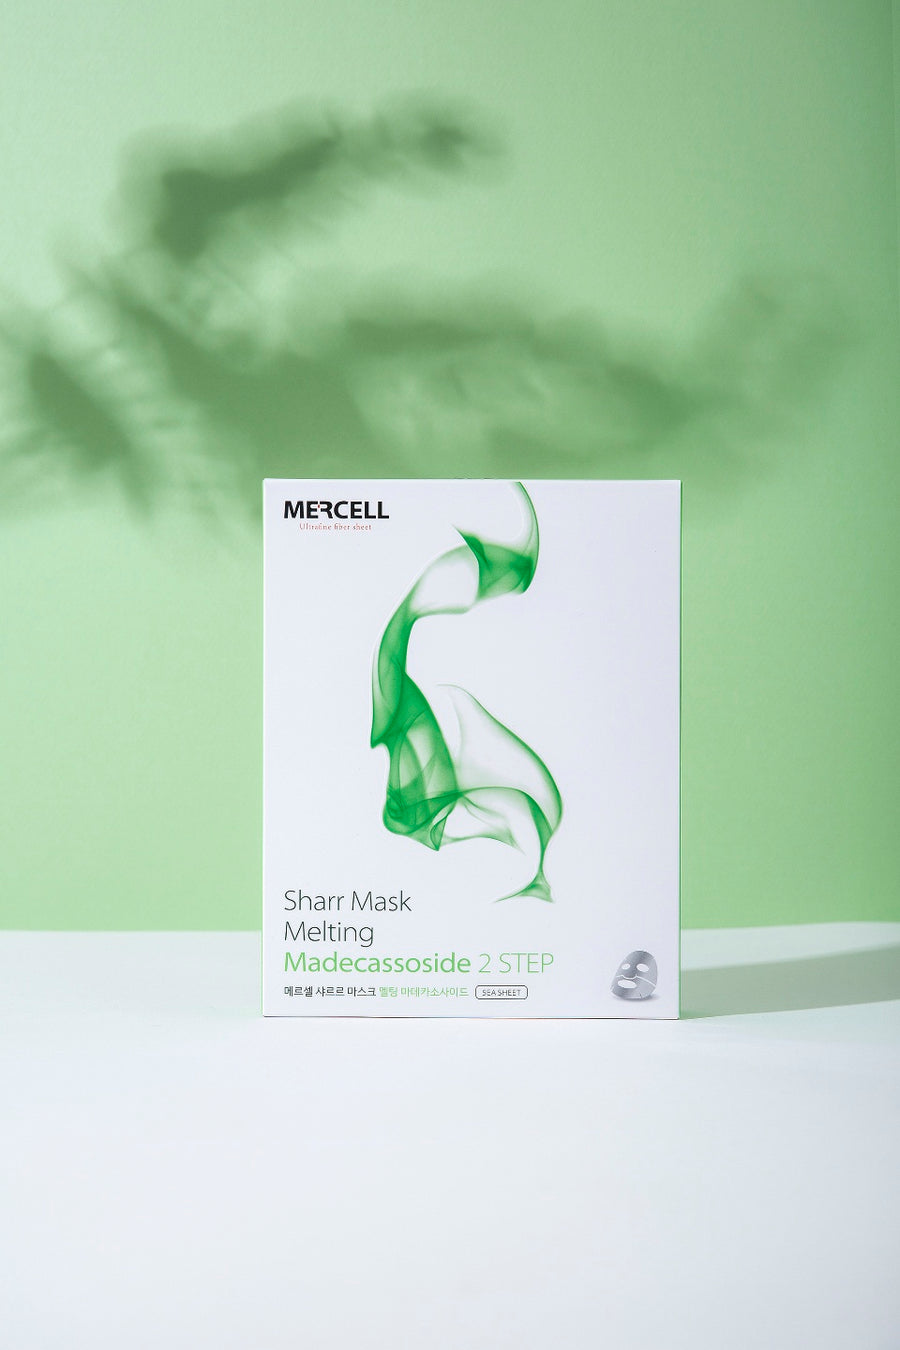 Mercell Sharr Mask Sheet Melting Madecassoside 1 box (5 ea) (4392620163125)